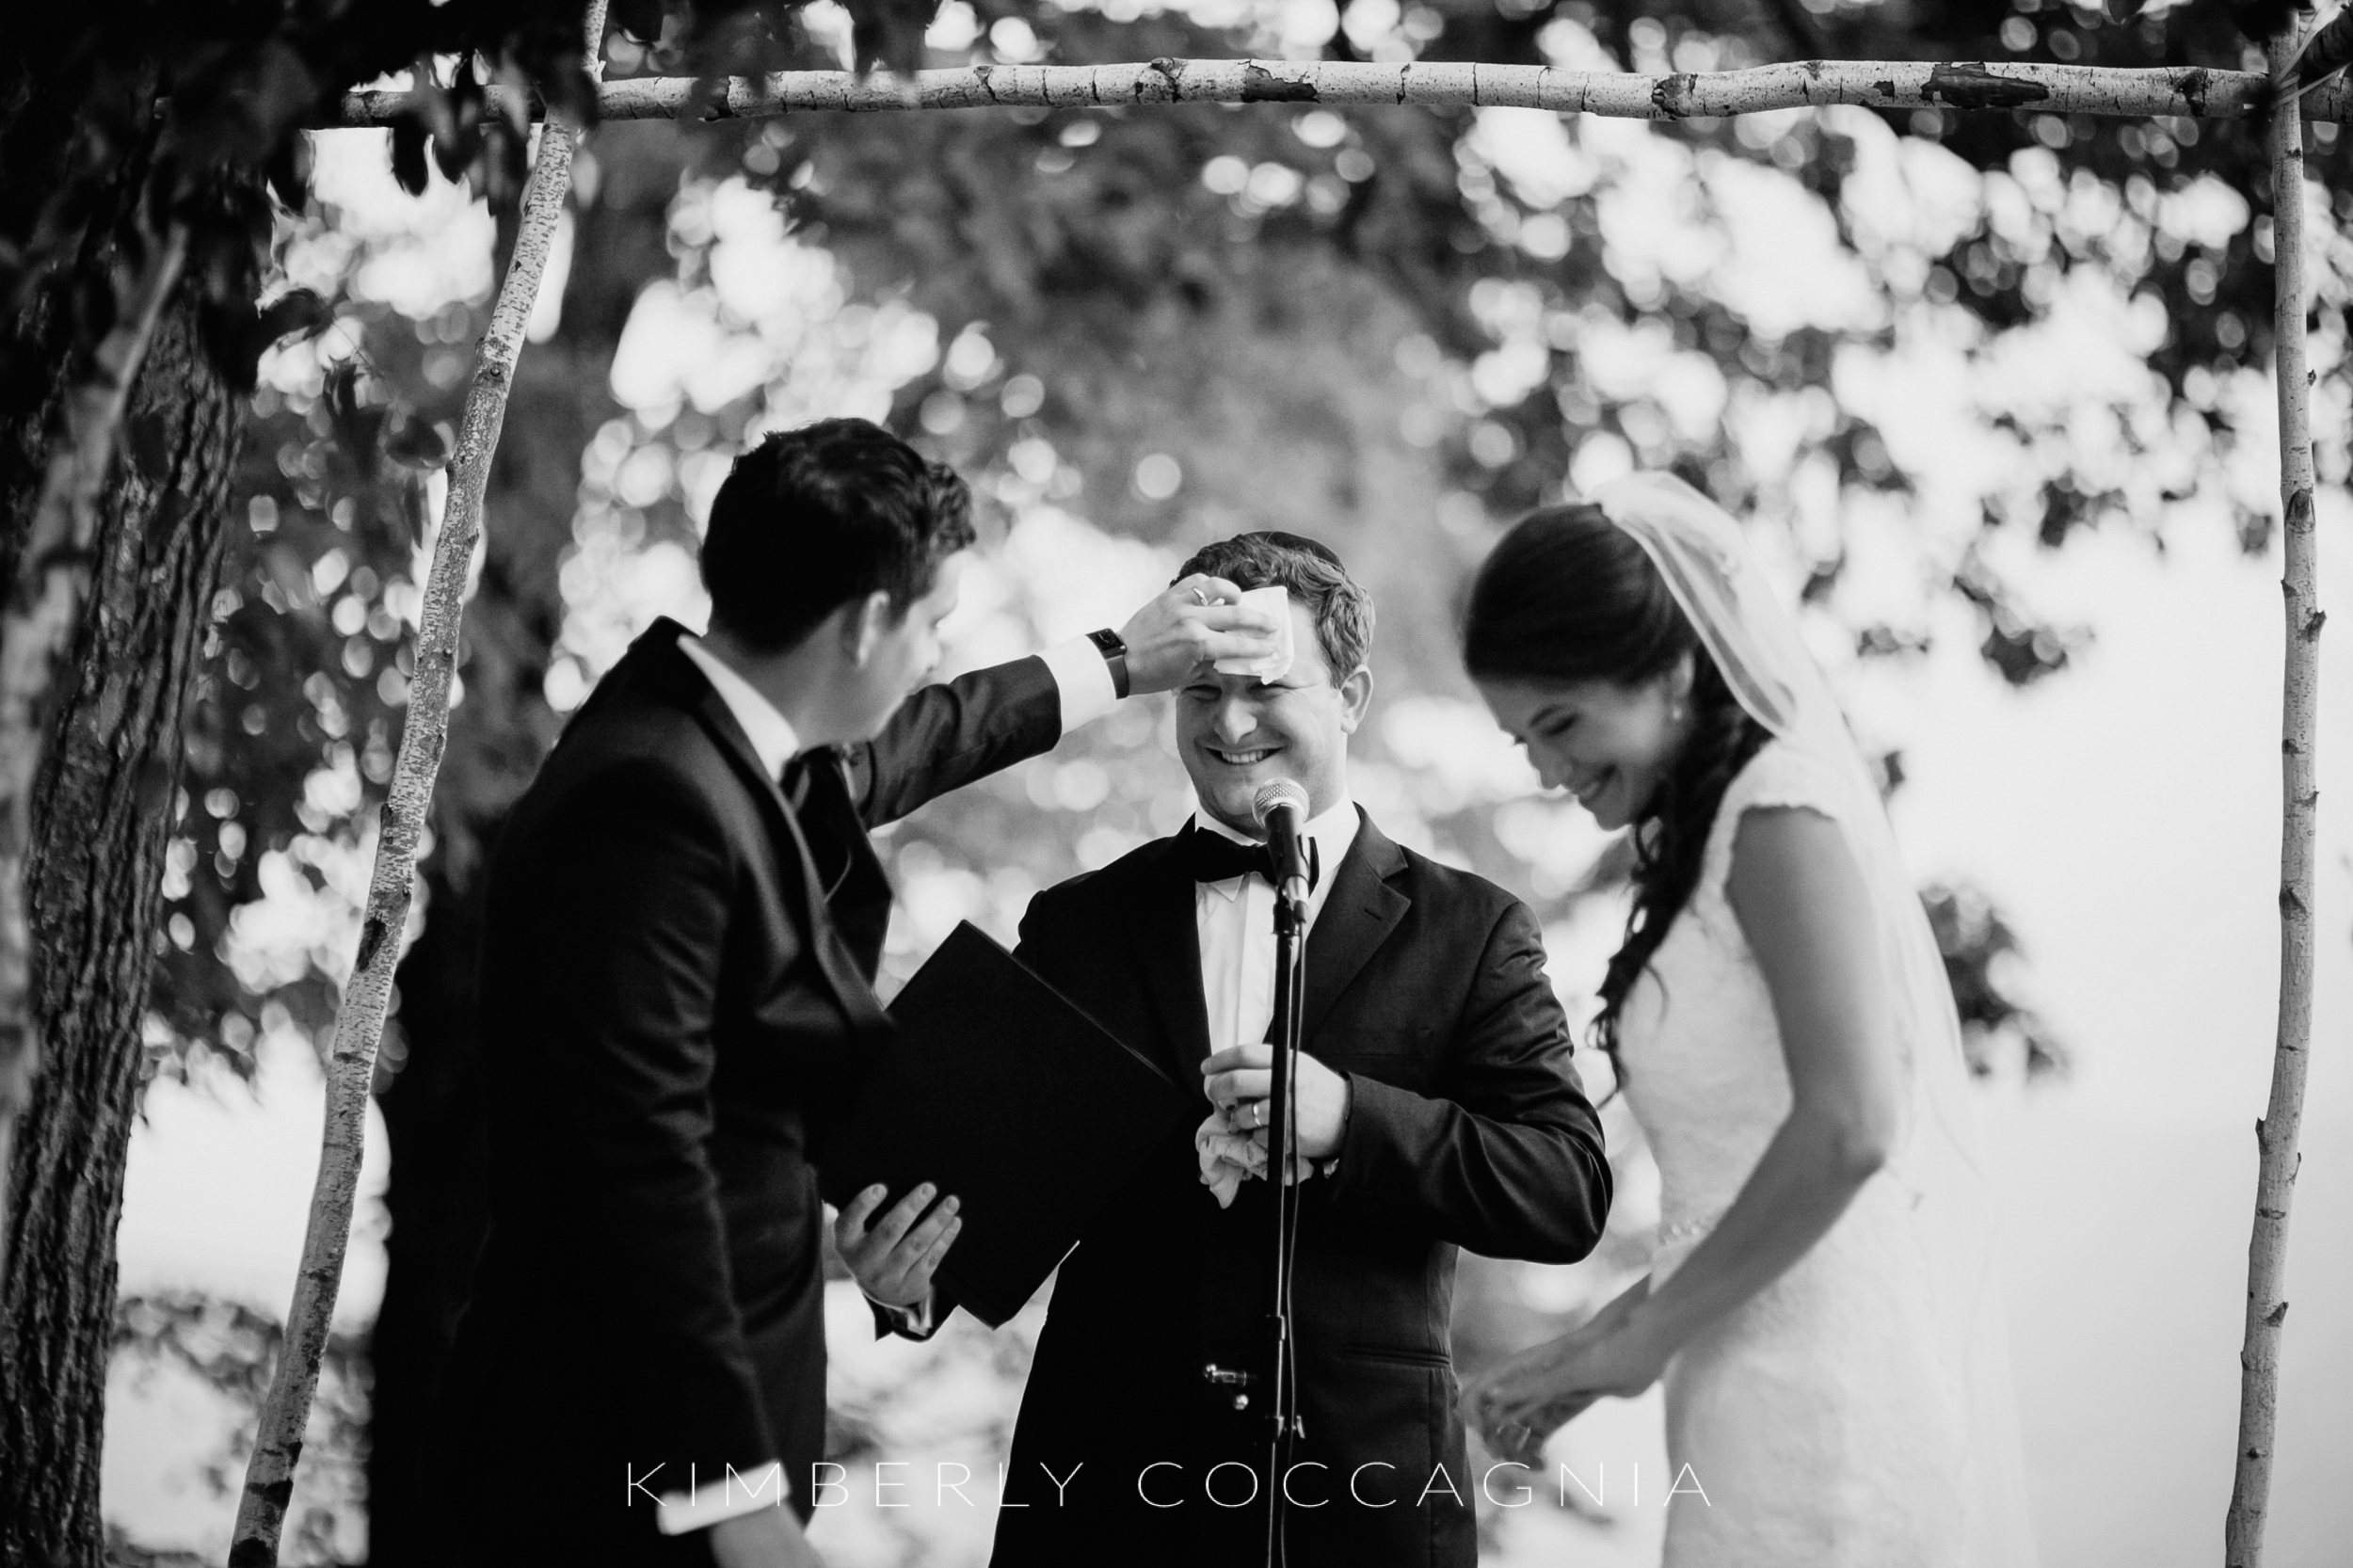 Kimberly+Coccagnia+Hudson+Valley+Wedding+Photographer-77.JPG